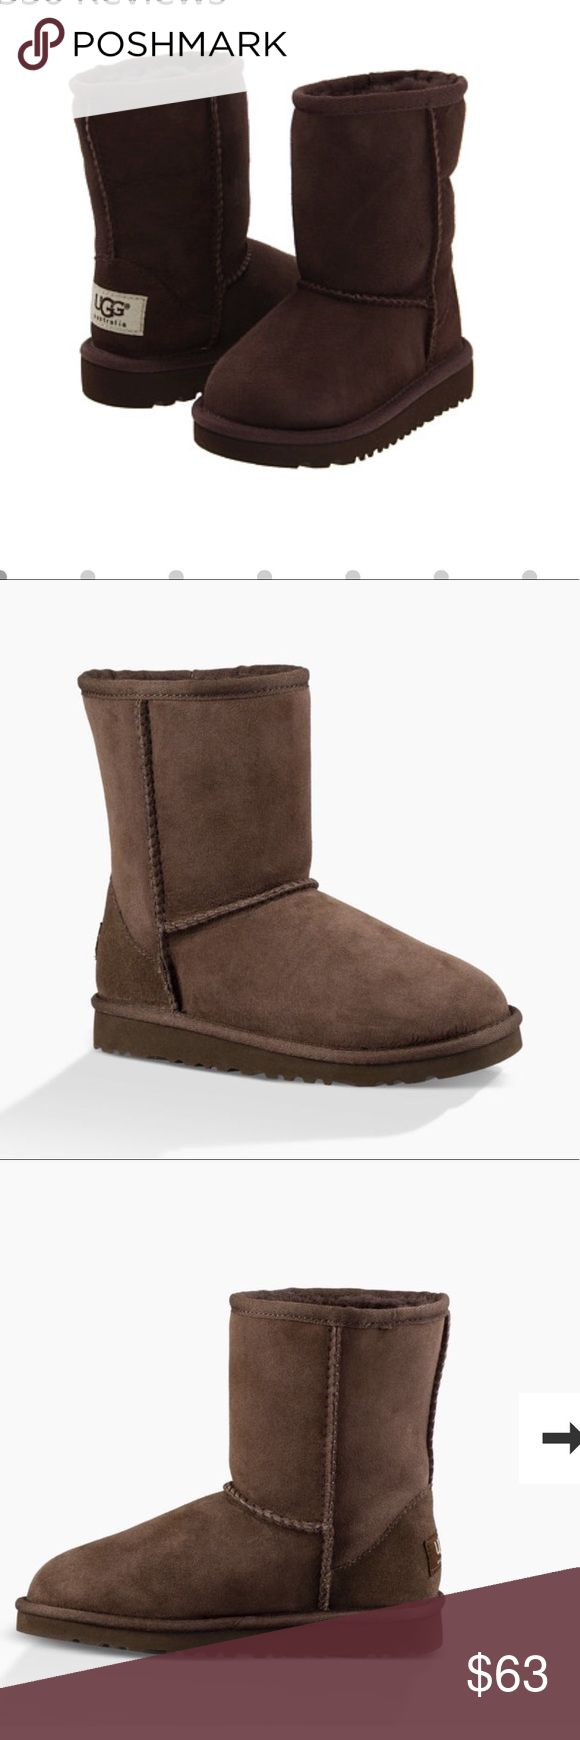 Toddler UGG boots PRICE REDUCTION Brand new in box, chocolate, original Ugg boots for toddler. UGG Shoes Boots